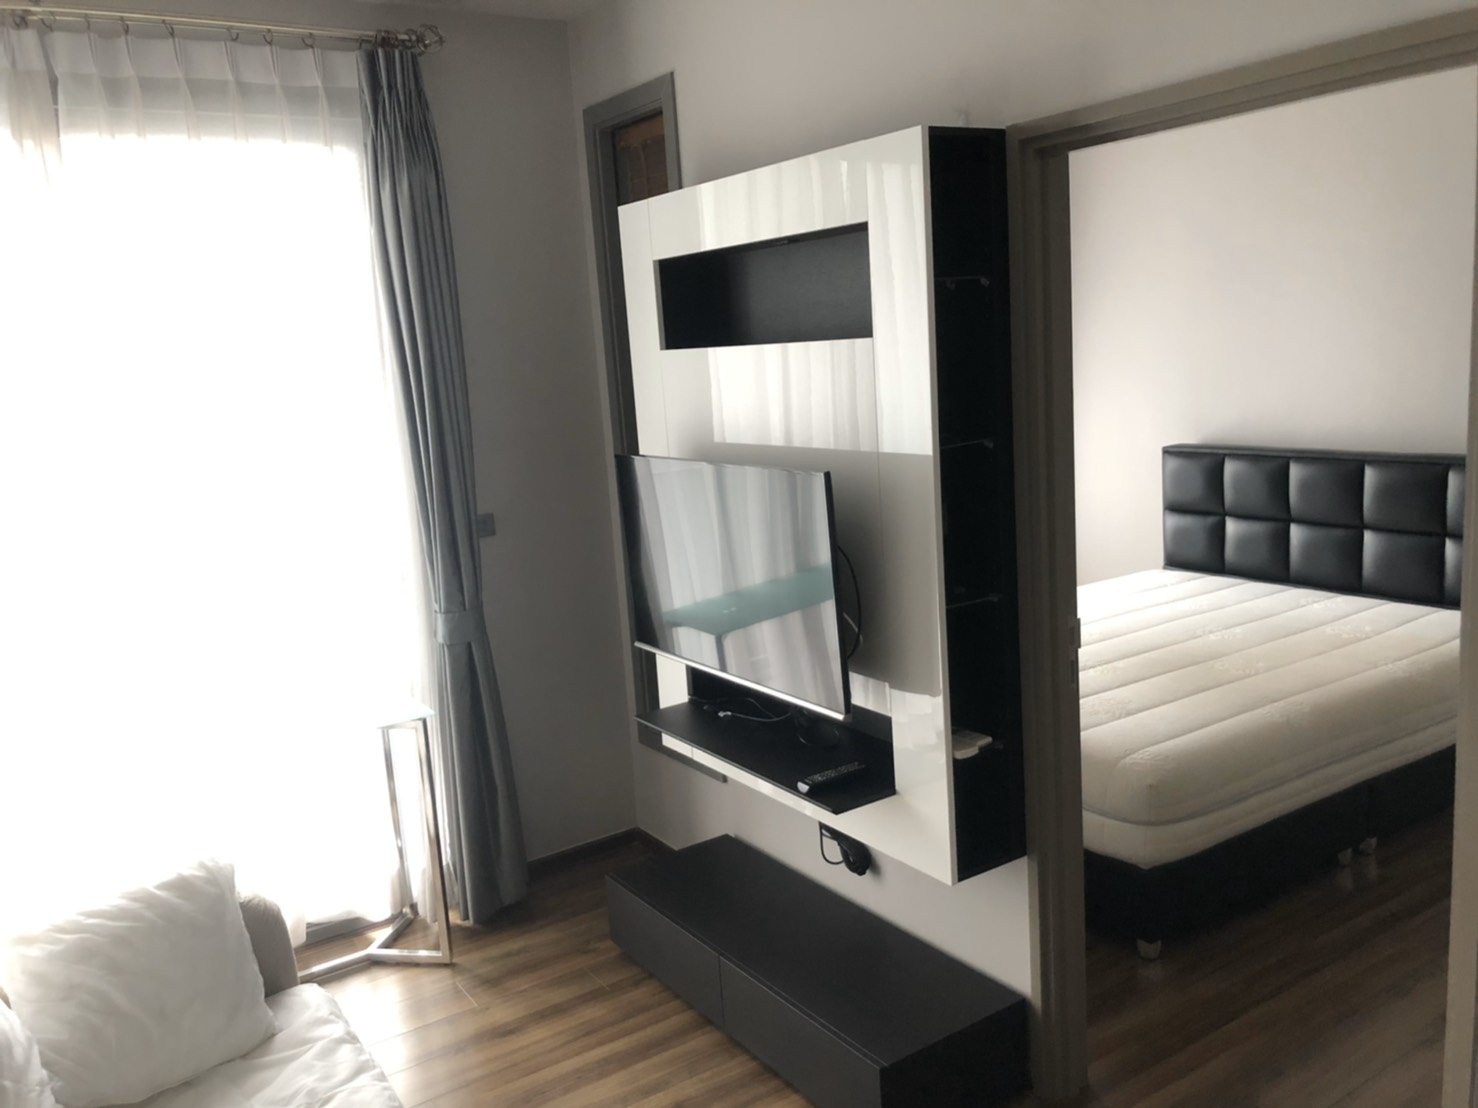 For SaleCondoSukhumvit, Asoke, Thonglor : Ceil By Sansiri Ekkamai 12, near Donki Mall and the place to hang out in Ekkamai area, is a place for Japanese and foreigners to buy. Buying and investing can be easily leased. Good room location, Unblock View, nice room, owner take good care